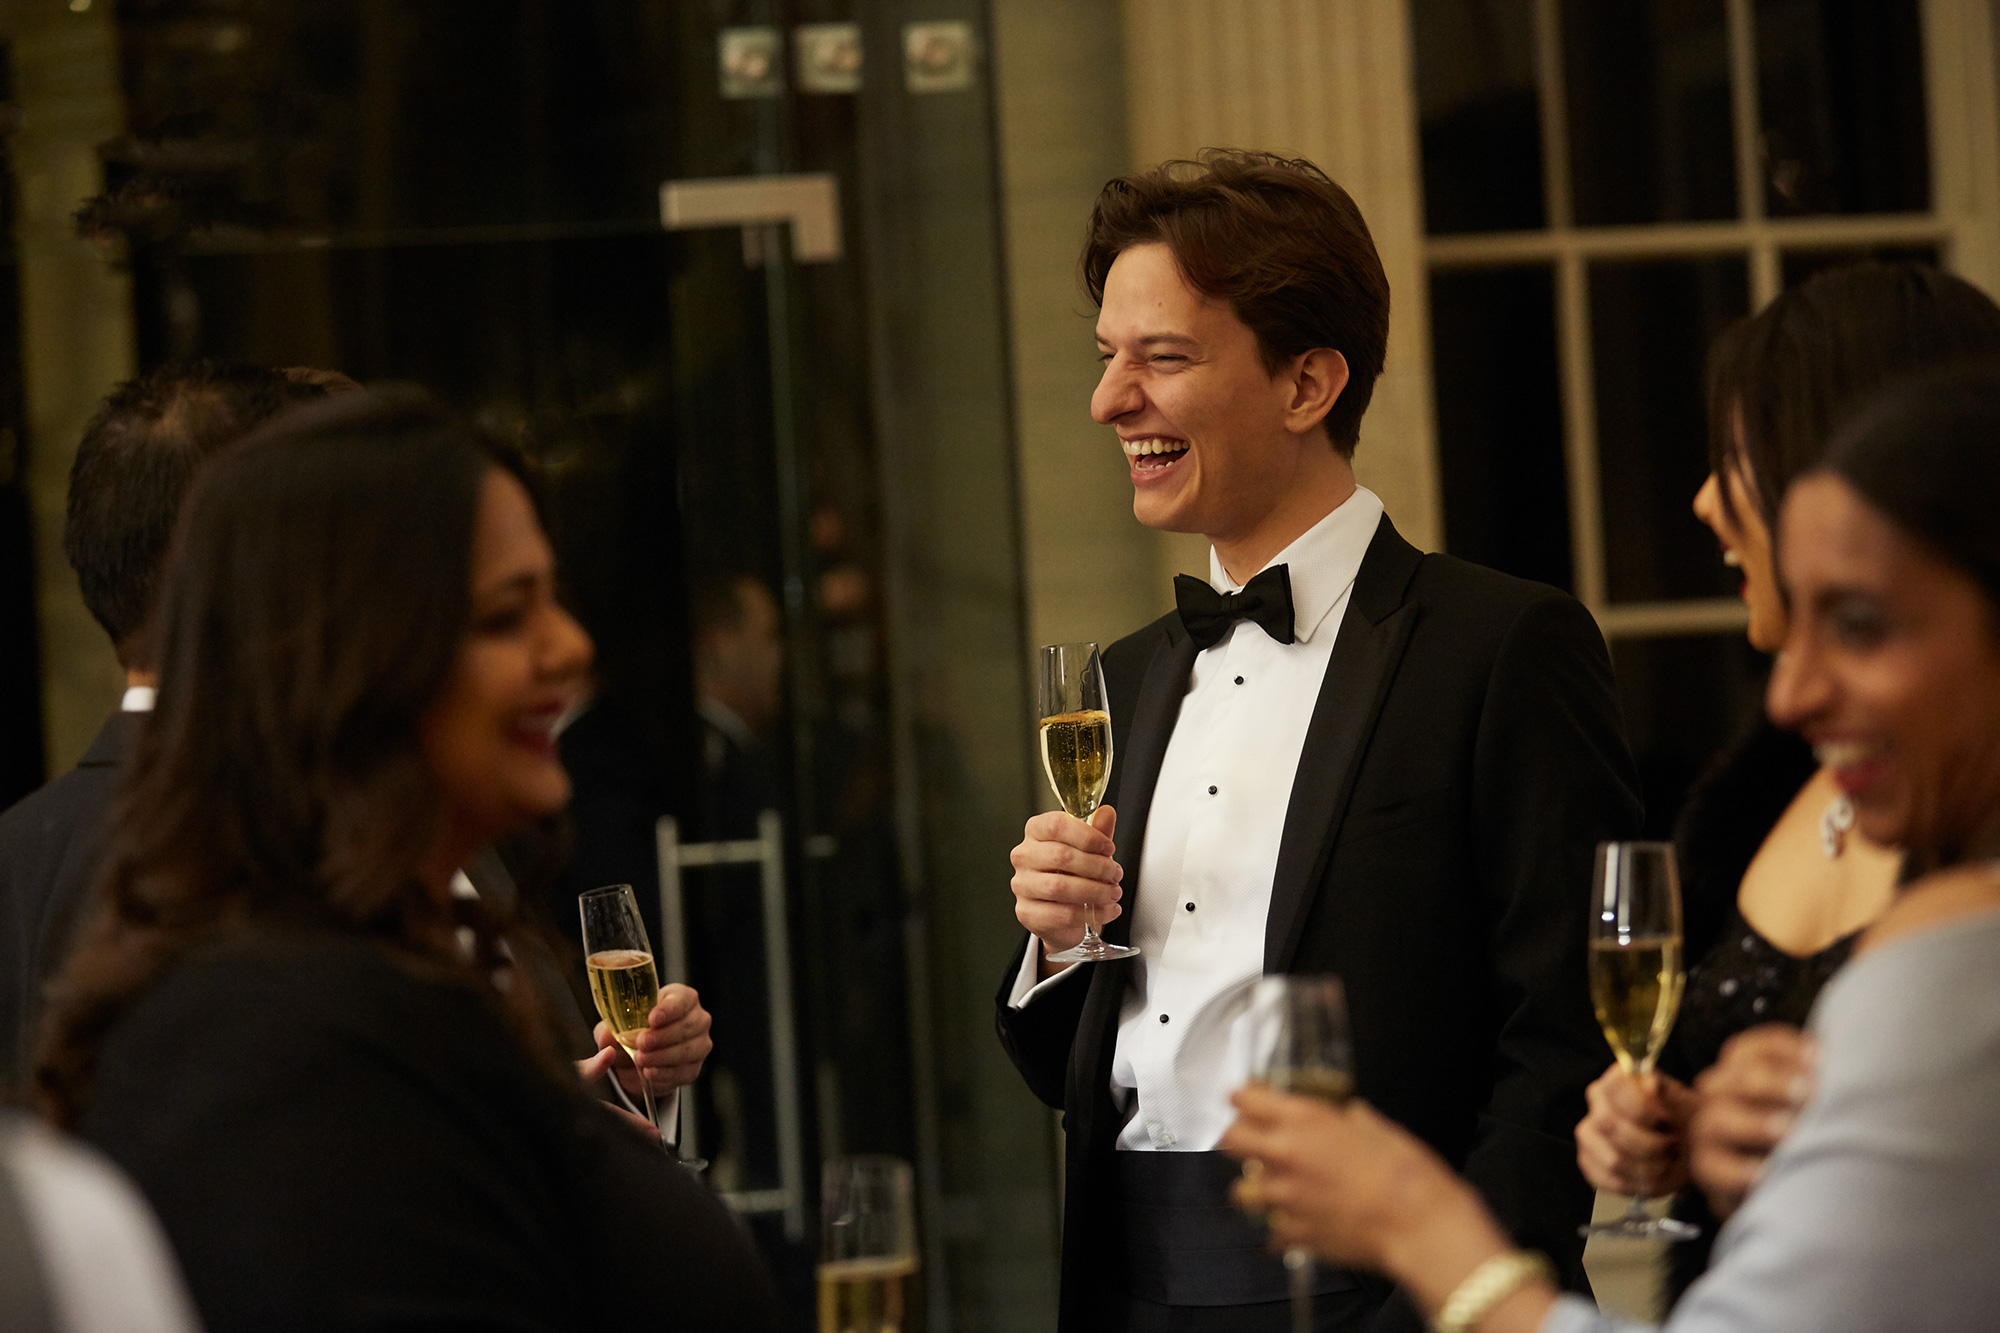 party-photography-black-tie-dinner-london-oxford-circus.jpg